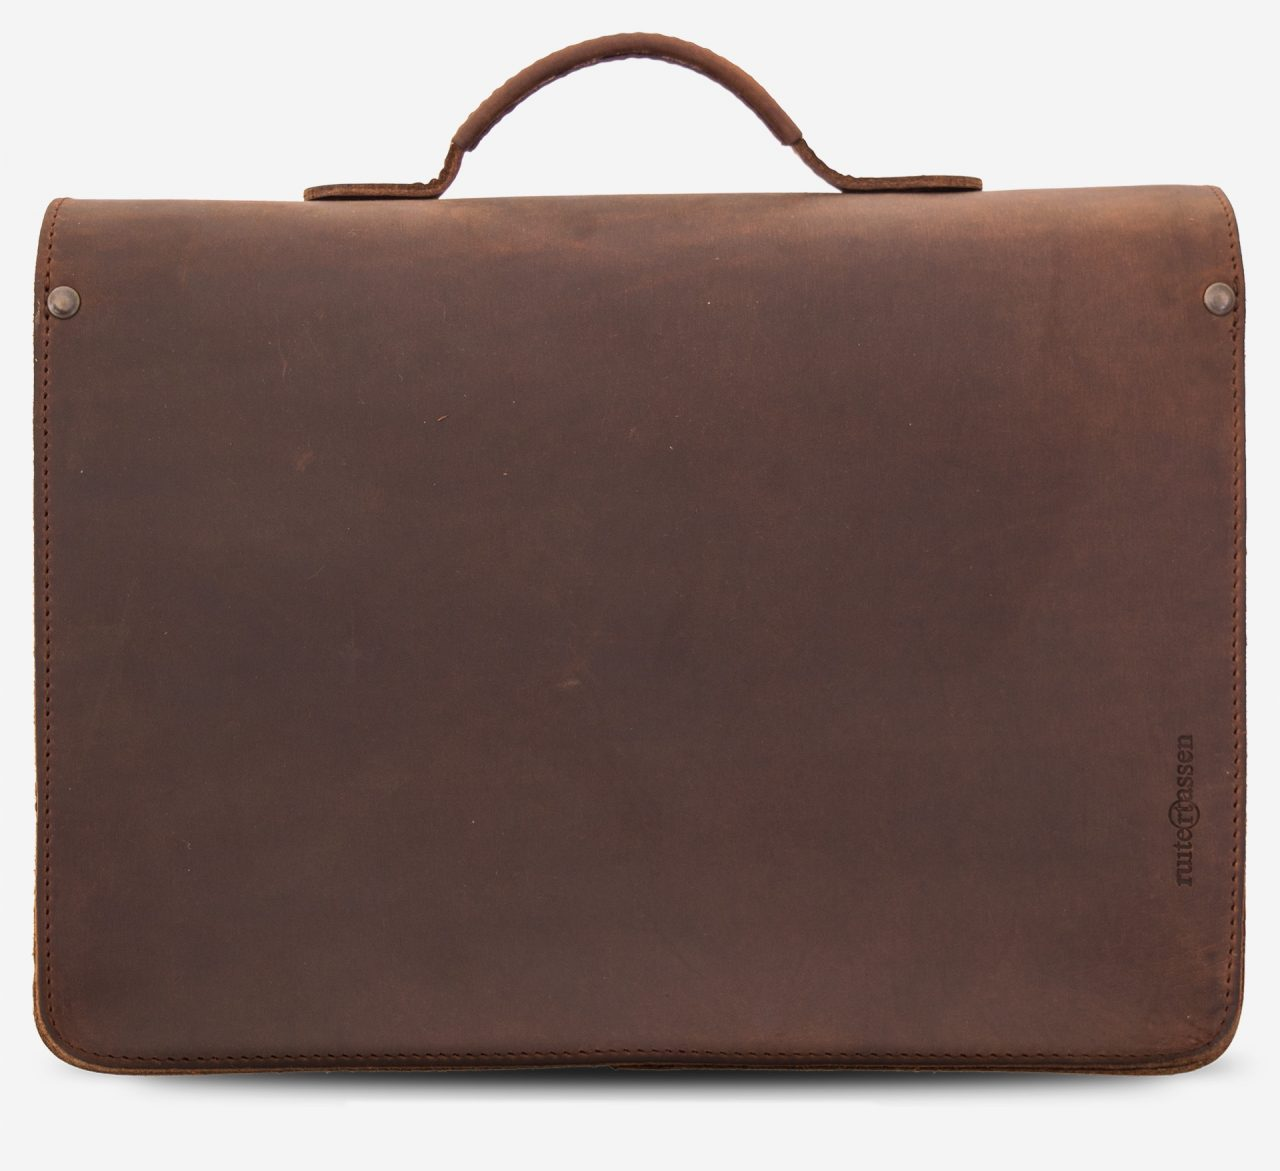 Back view of the brown leather satchel for professor with Ruitertassen logo.